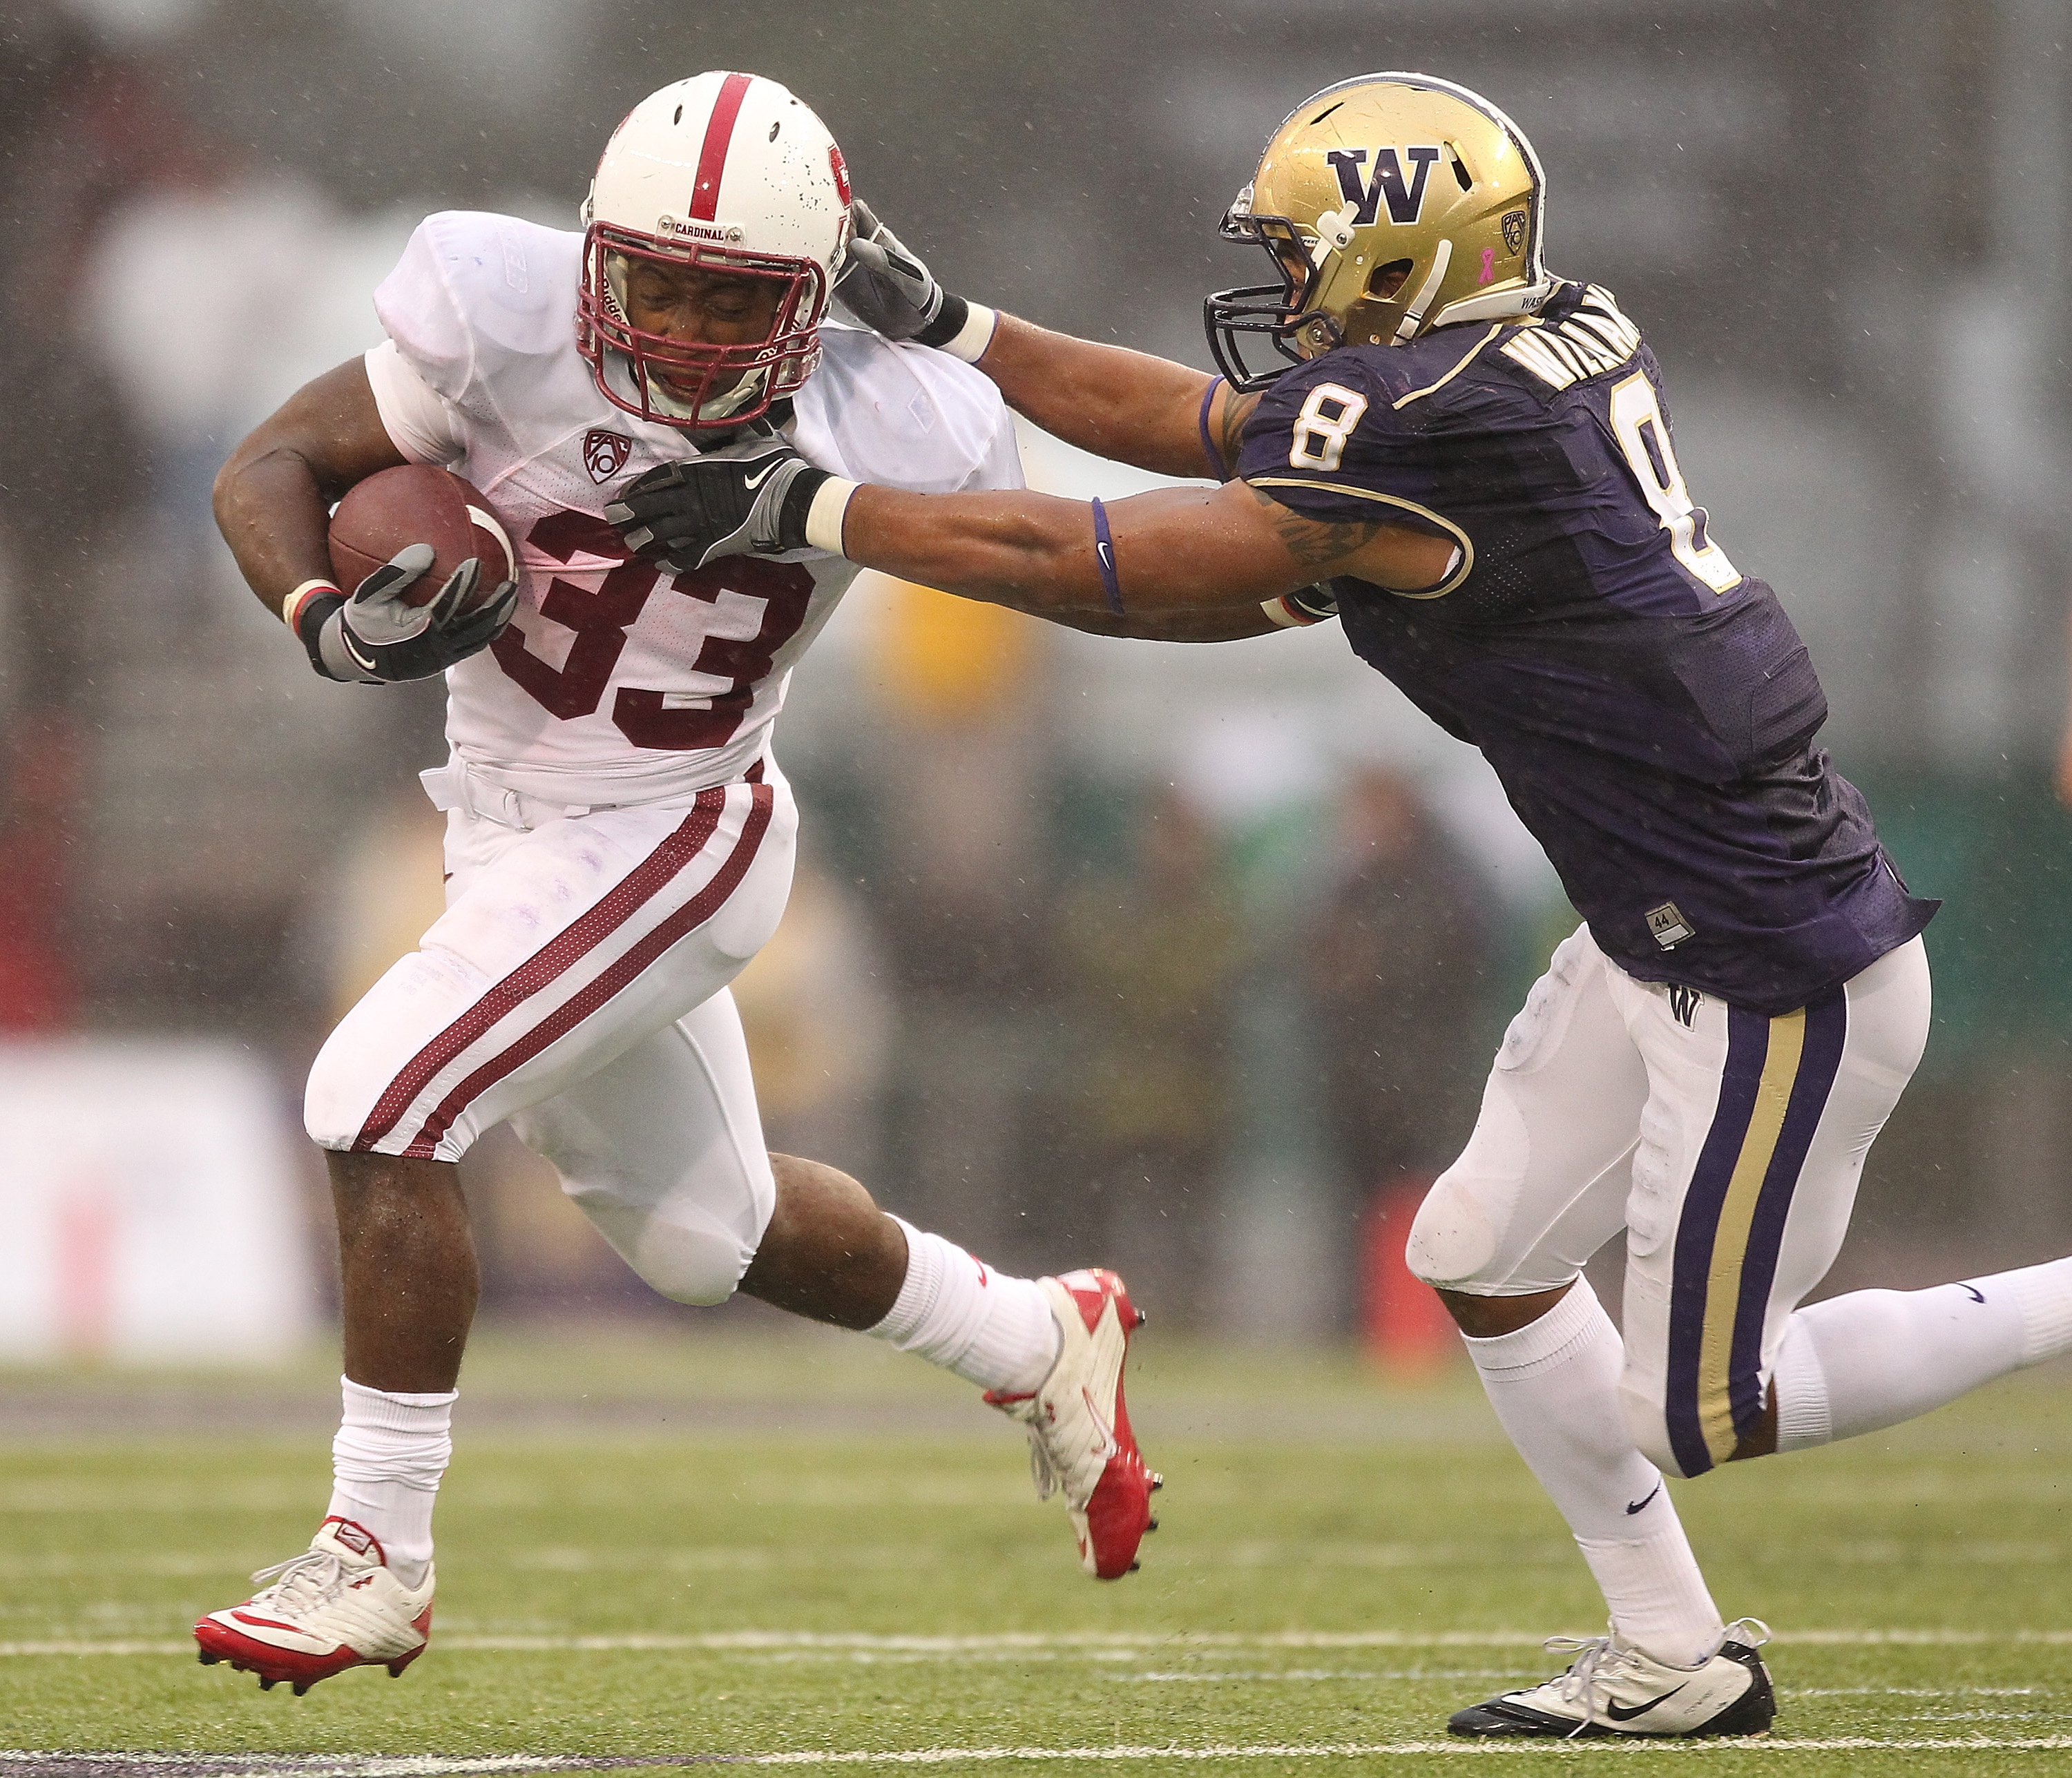 SEATTLE - OCTOBER 30:  Running back Stepfan Taylor #33 of the Stanford Cardinal rushes against Nate Williams #8 of the Washington Huskies on October 30, 2010 at Husky Stadium in Seattle, Washington. Stanford defeated Washington 41-0. (Photo by Otto Greule